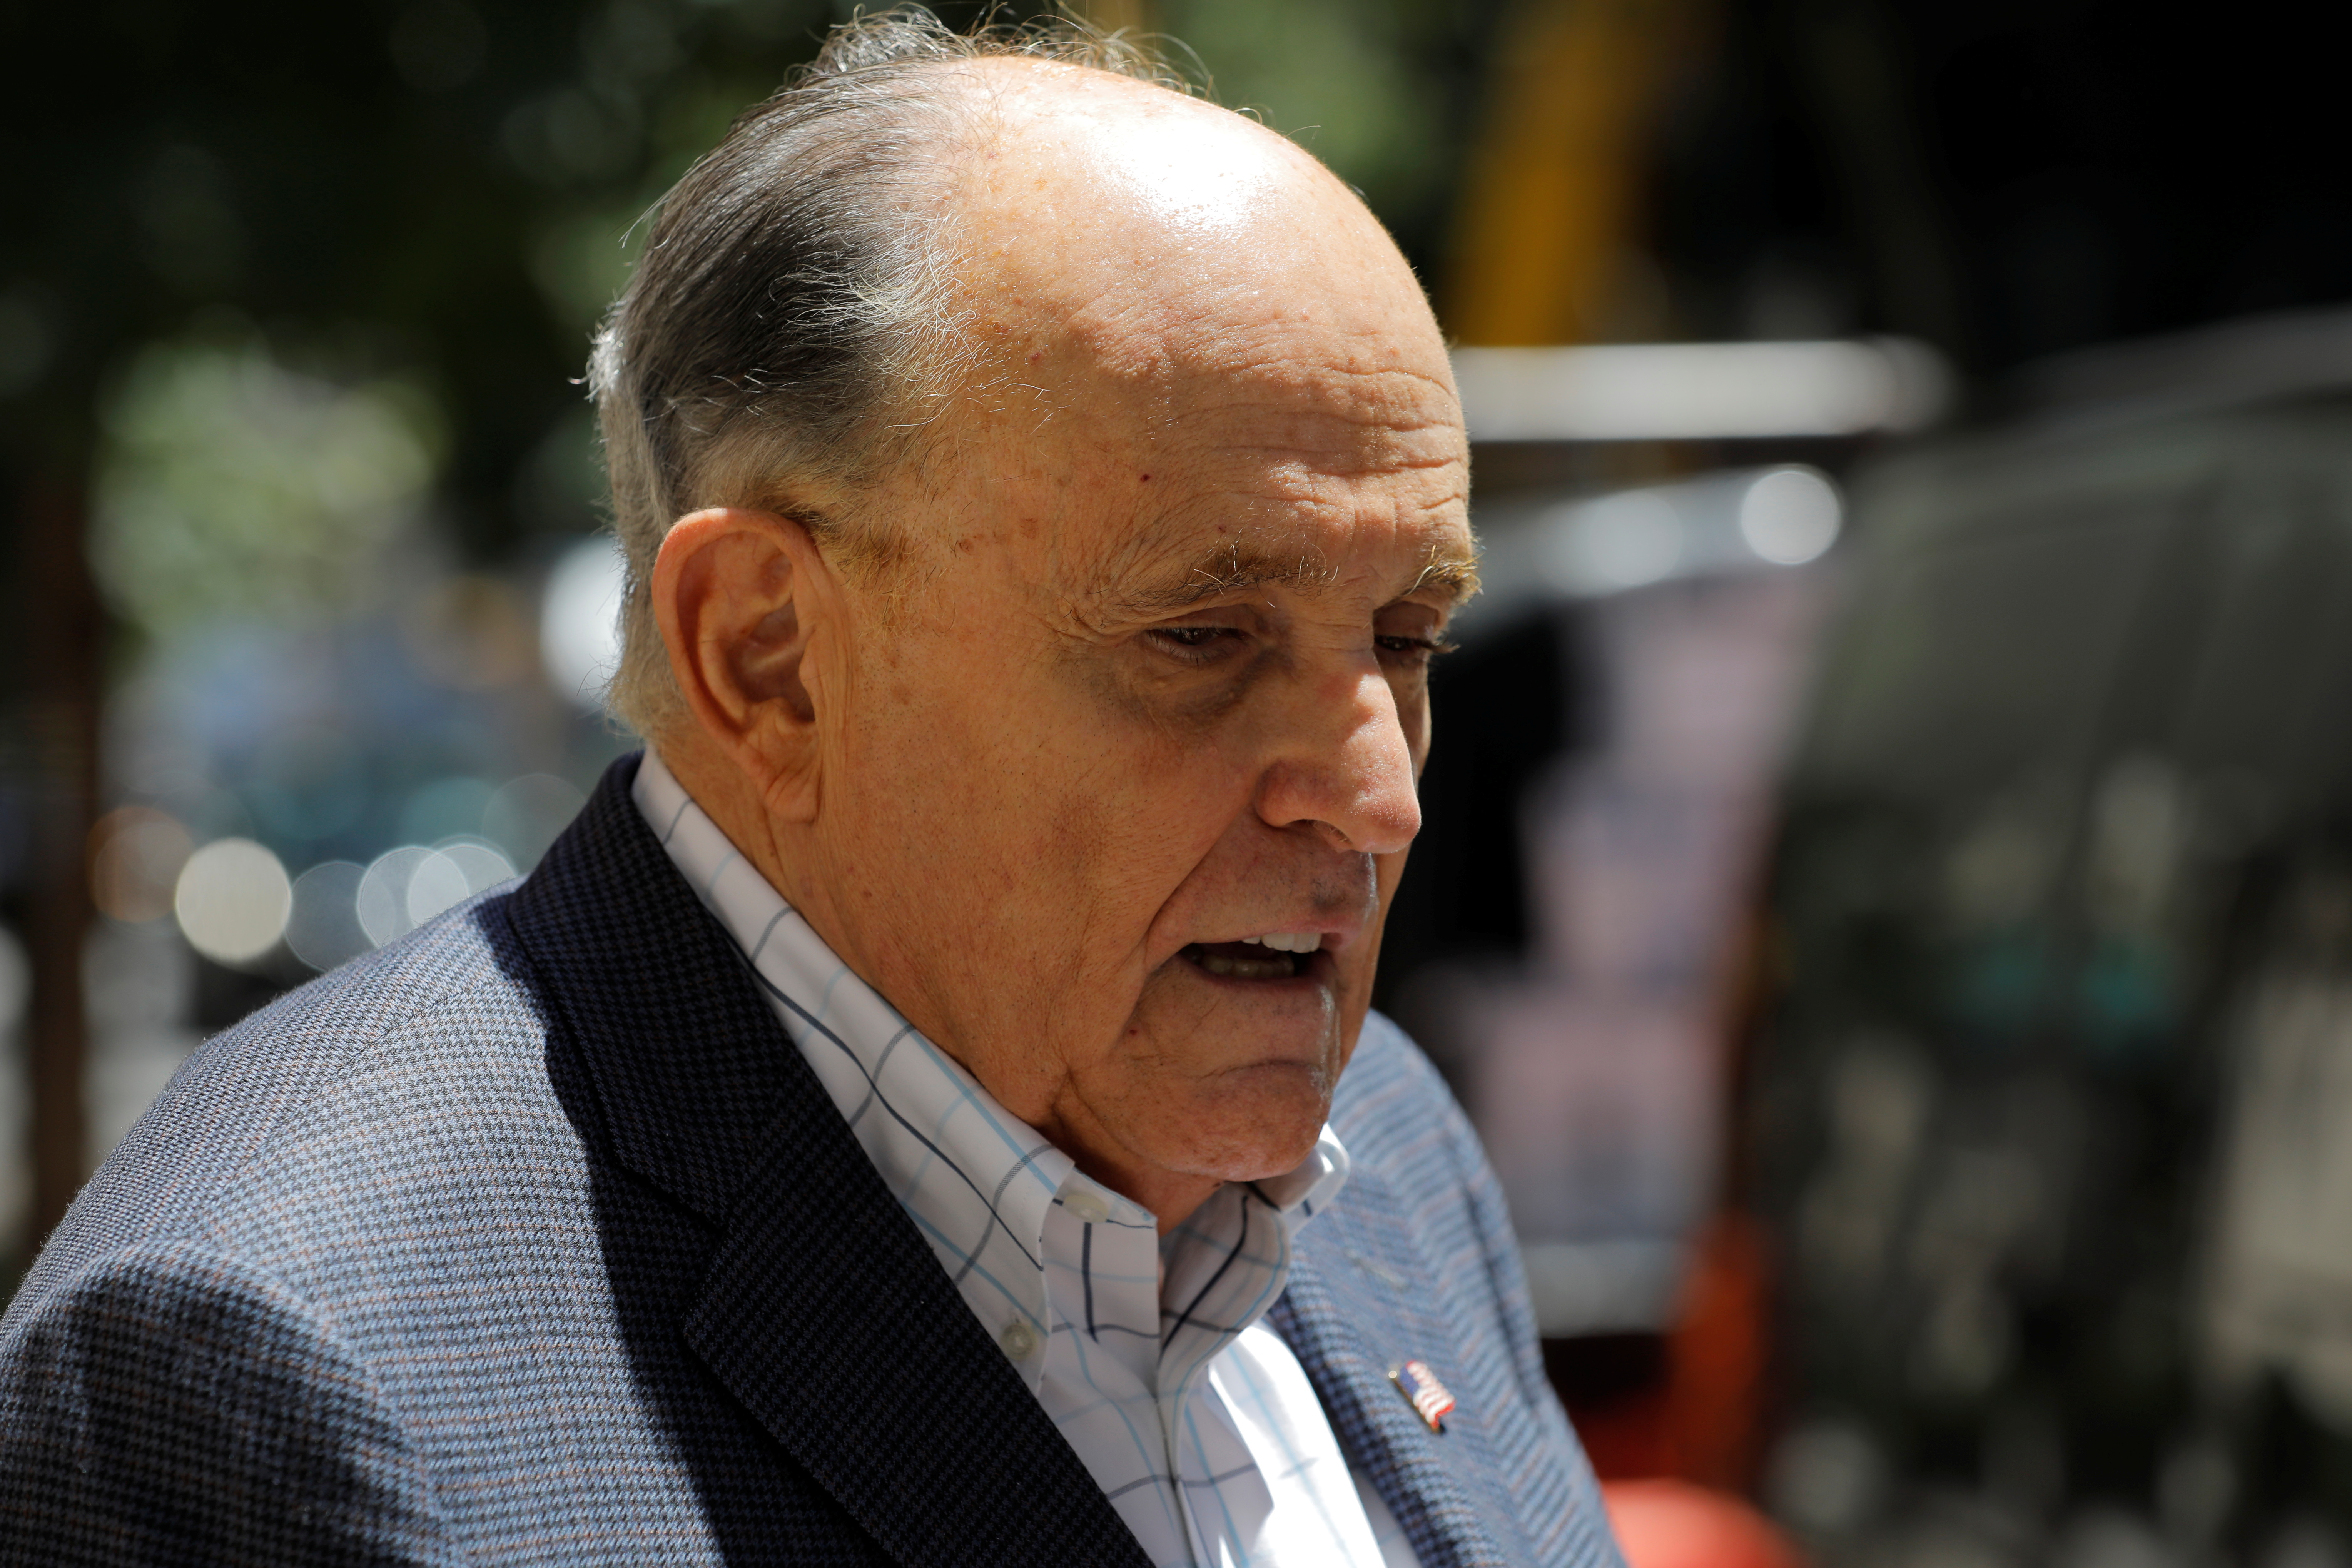 Former New York City Mayor Rudy Giuliani speaks to media outside his apartment building after suspension of his law license in Manhattan in New York City, New York, U.S., June 24, 2021. REUTERS/Andrew Kelly